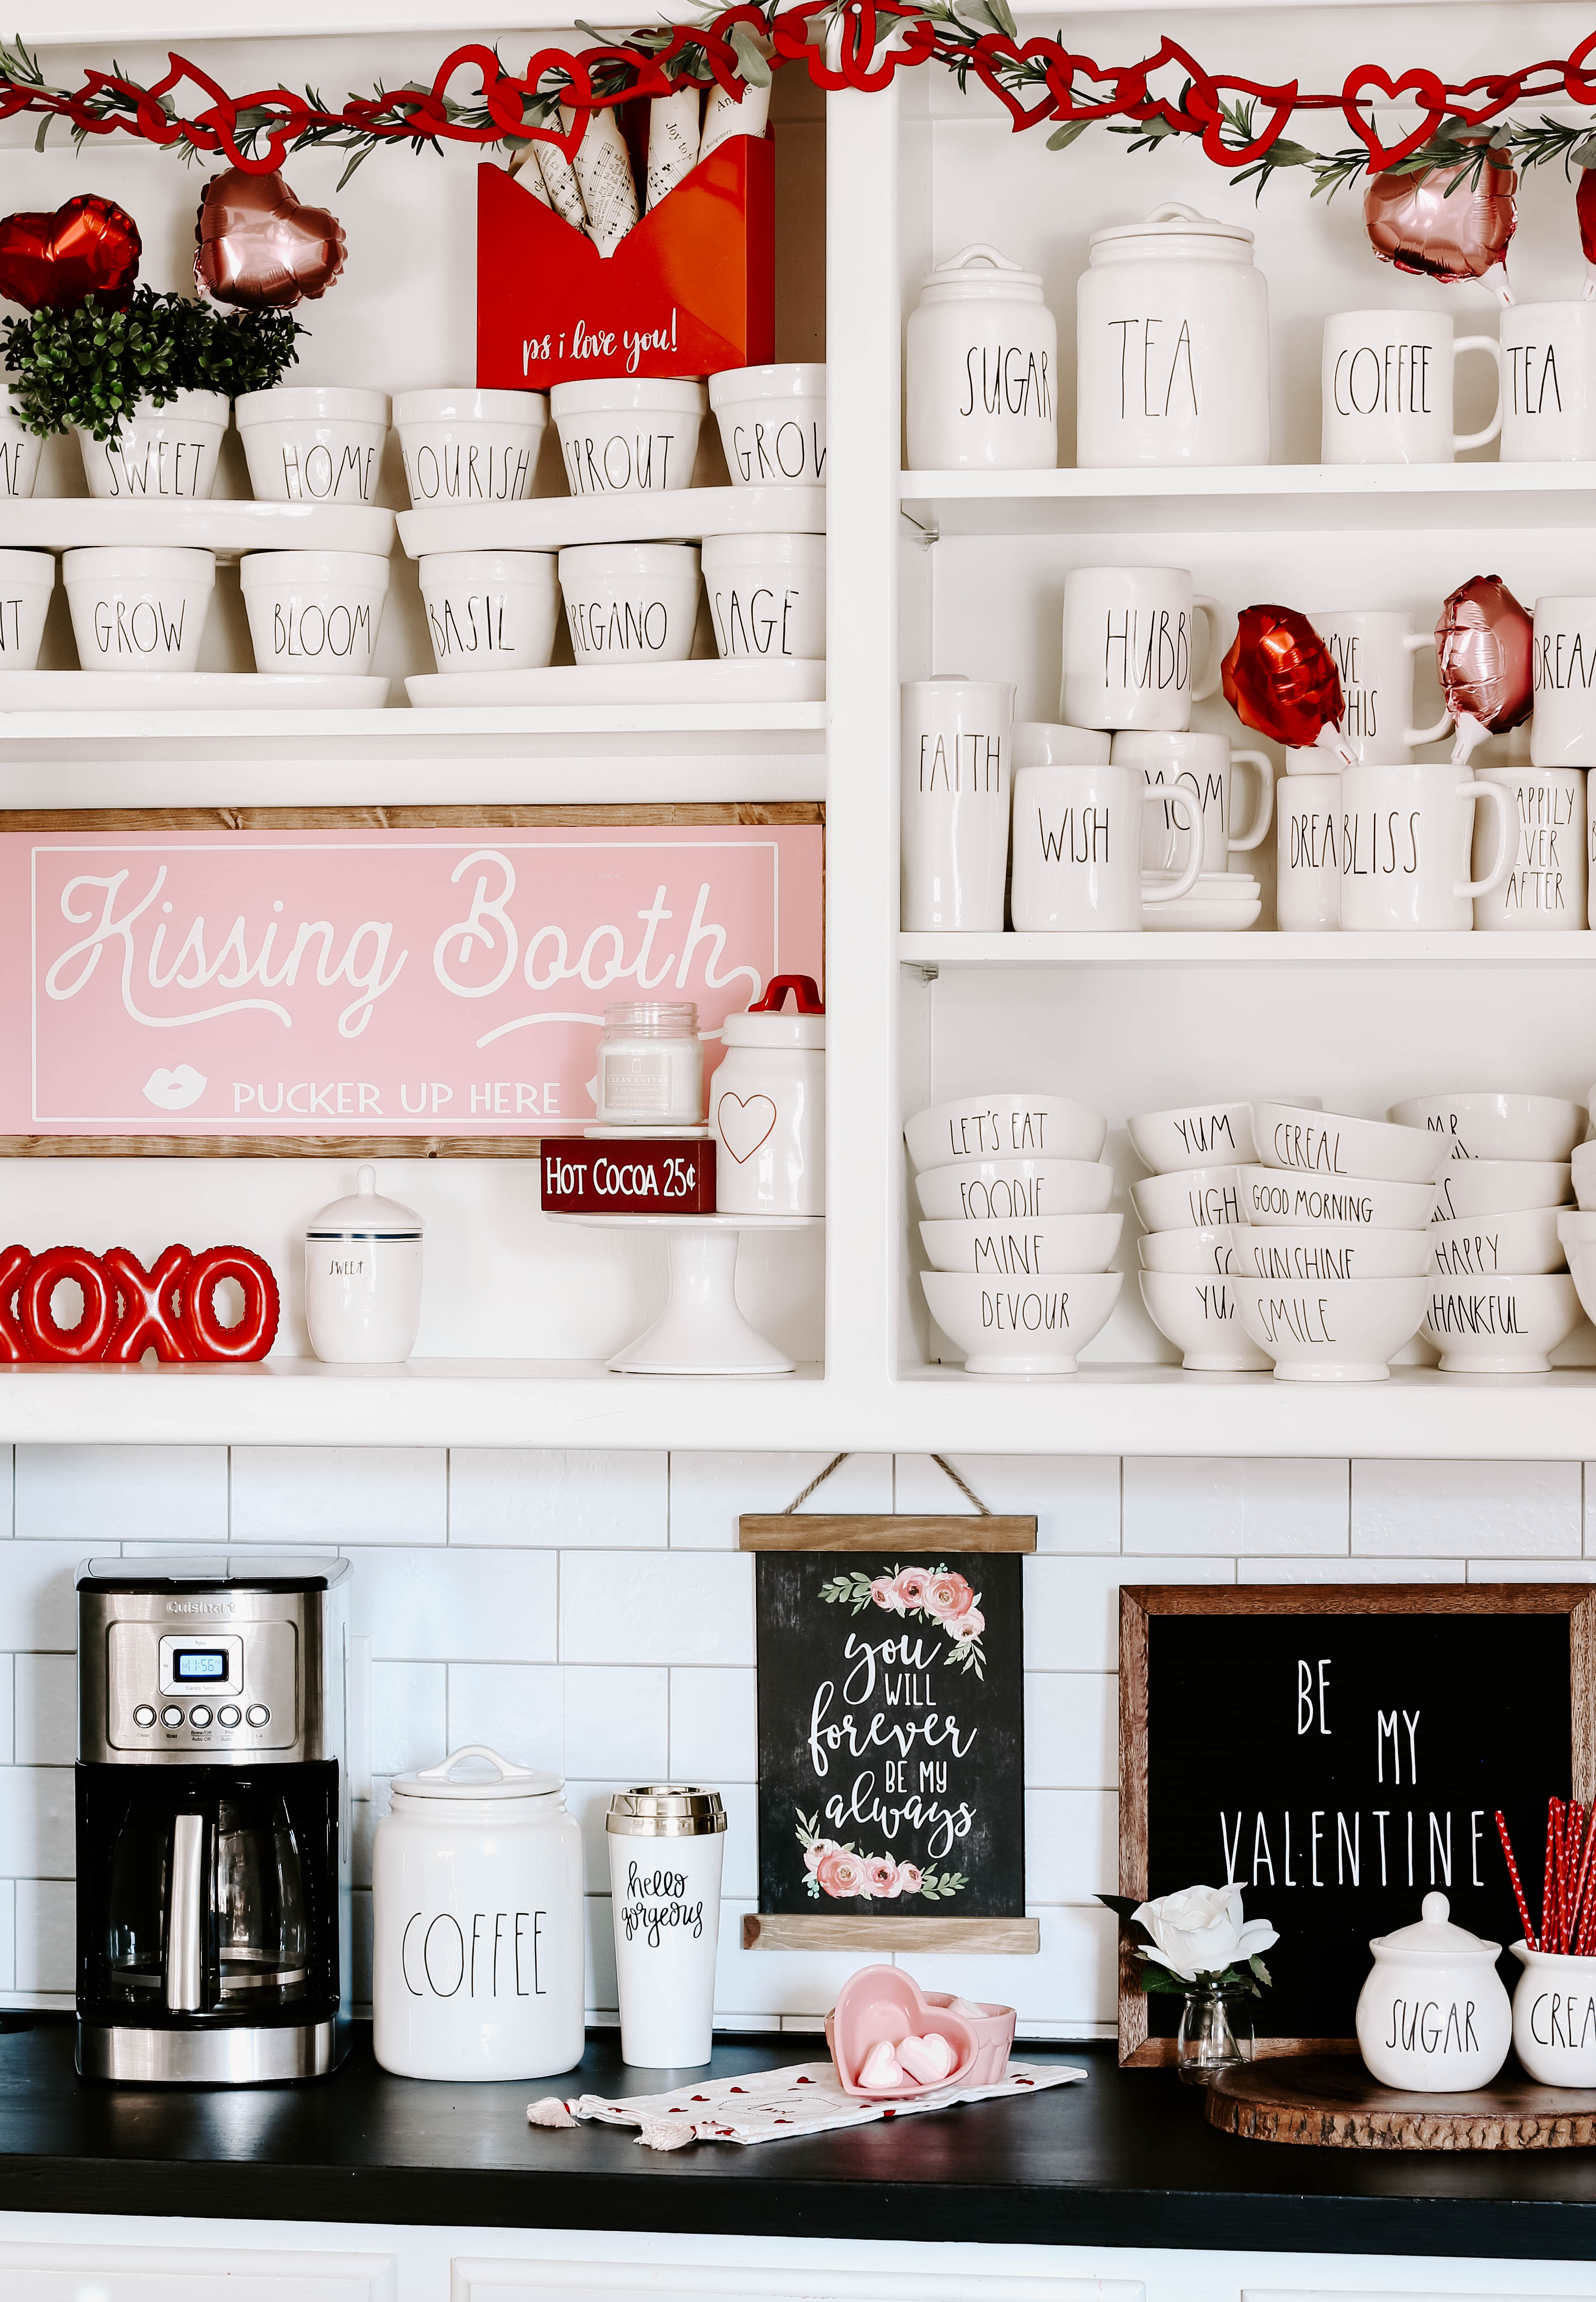 See how I created a farmhouse style Valentine coffee bar with lots of Rae Dunn and small touches of pink and red Valentine decor. #raedunncoffeebar